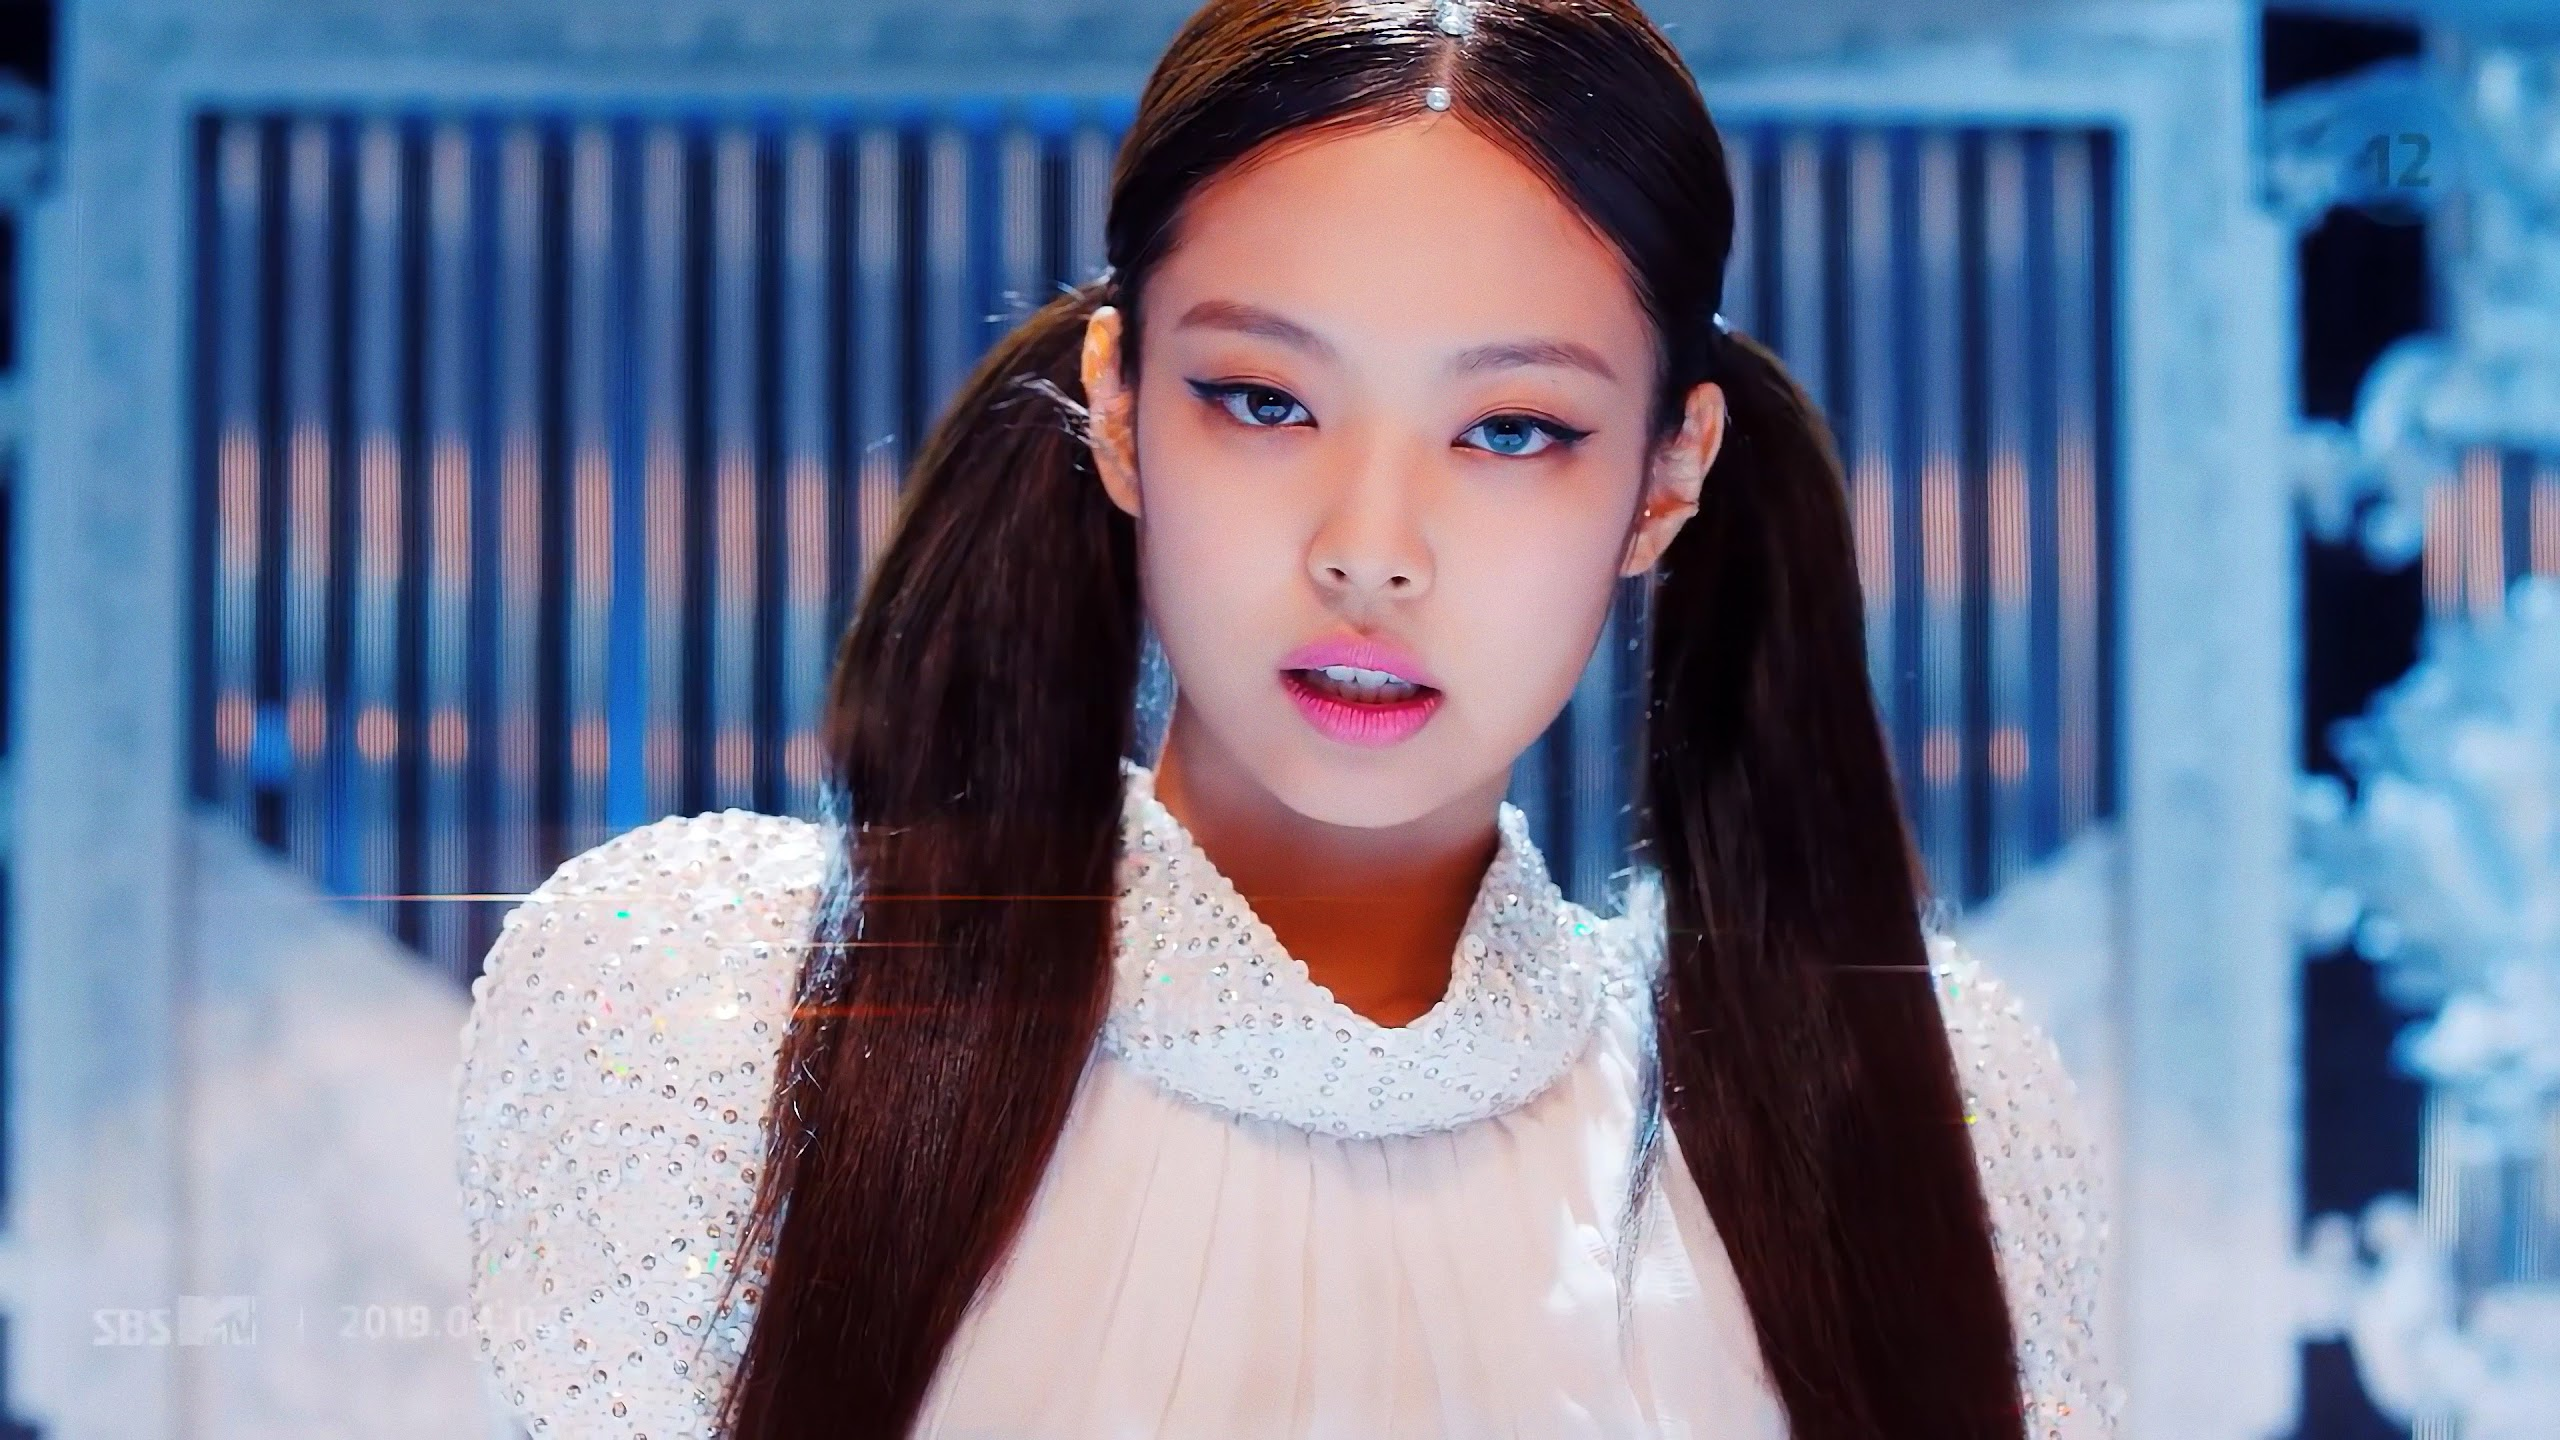 Blackpink Kill This Love Jennie 4k Wallpaper 7